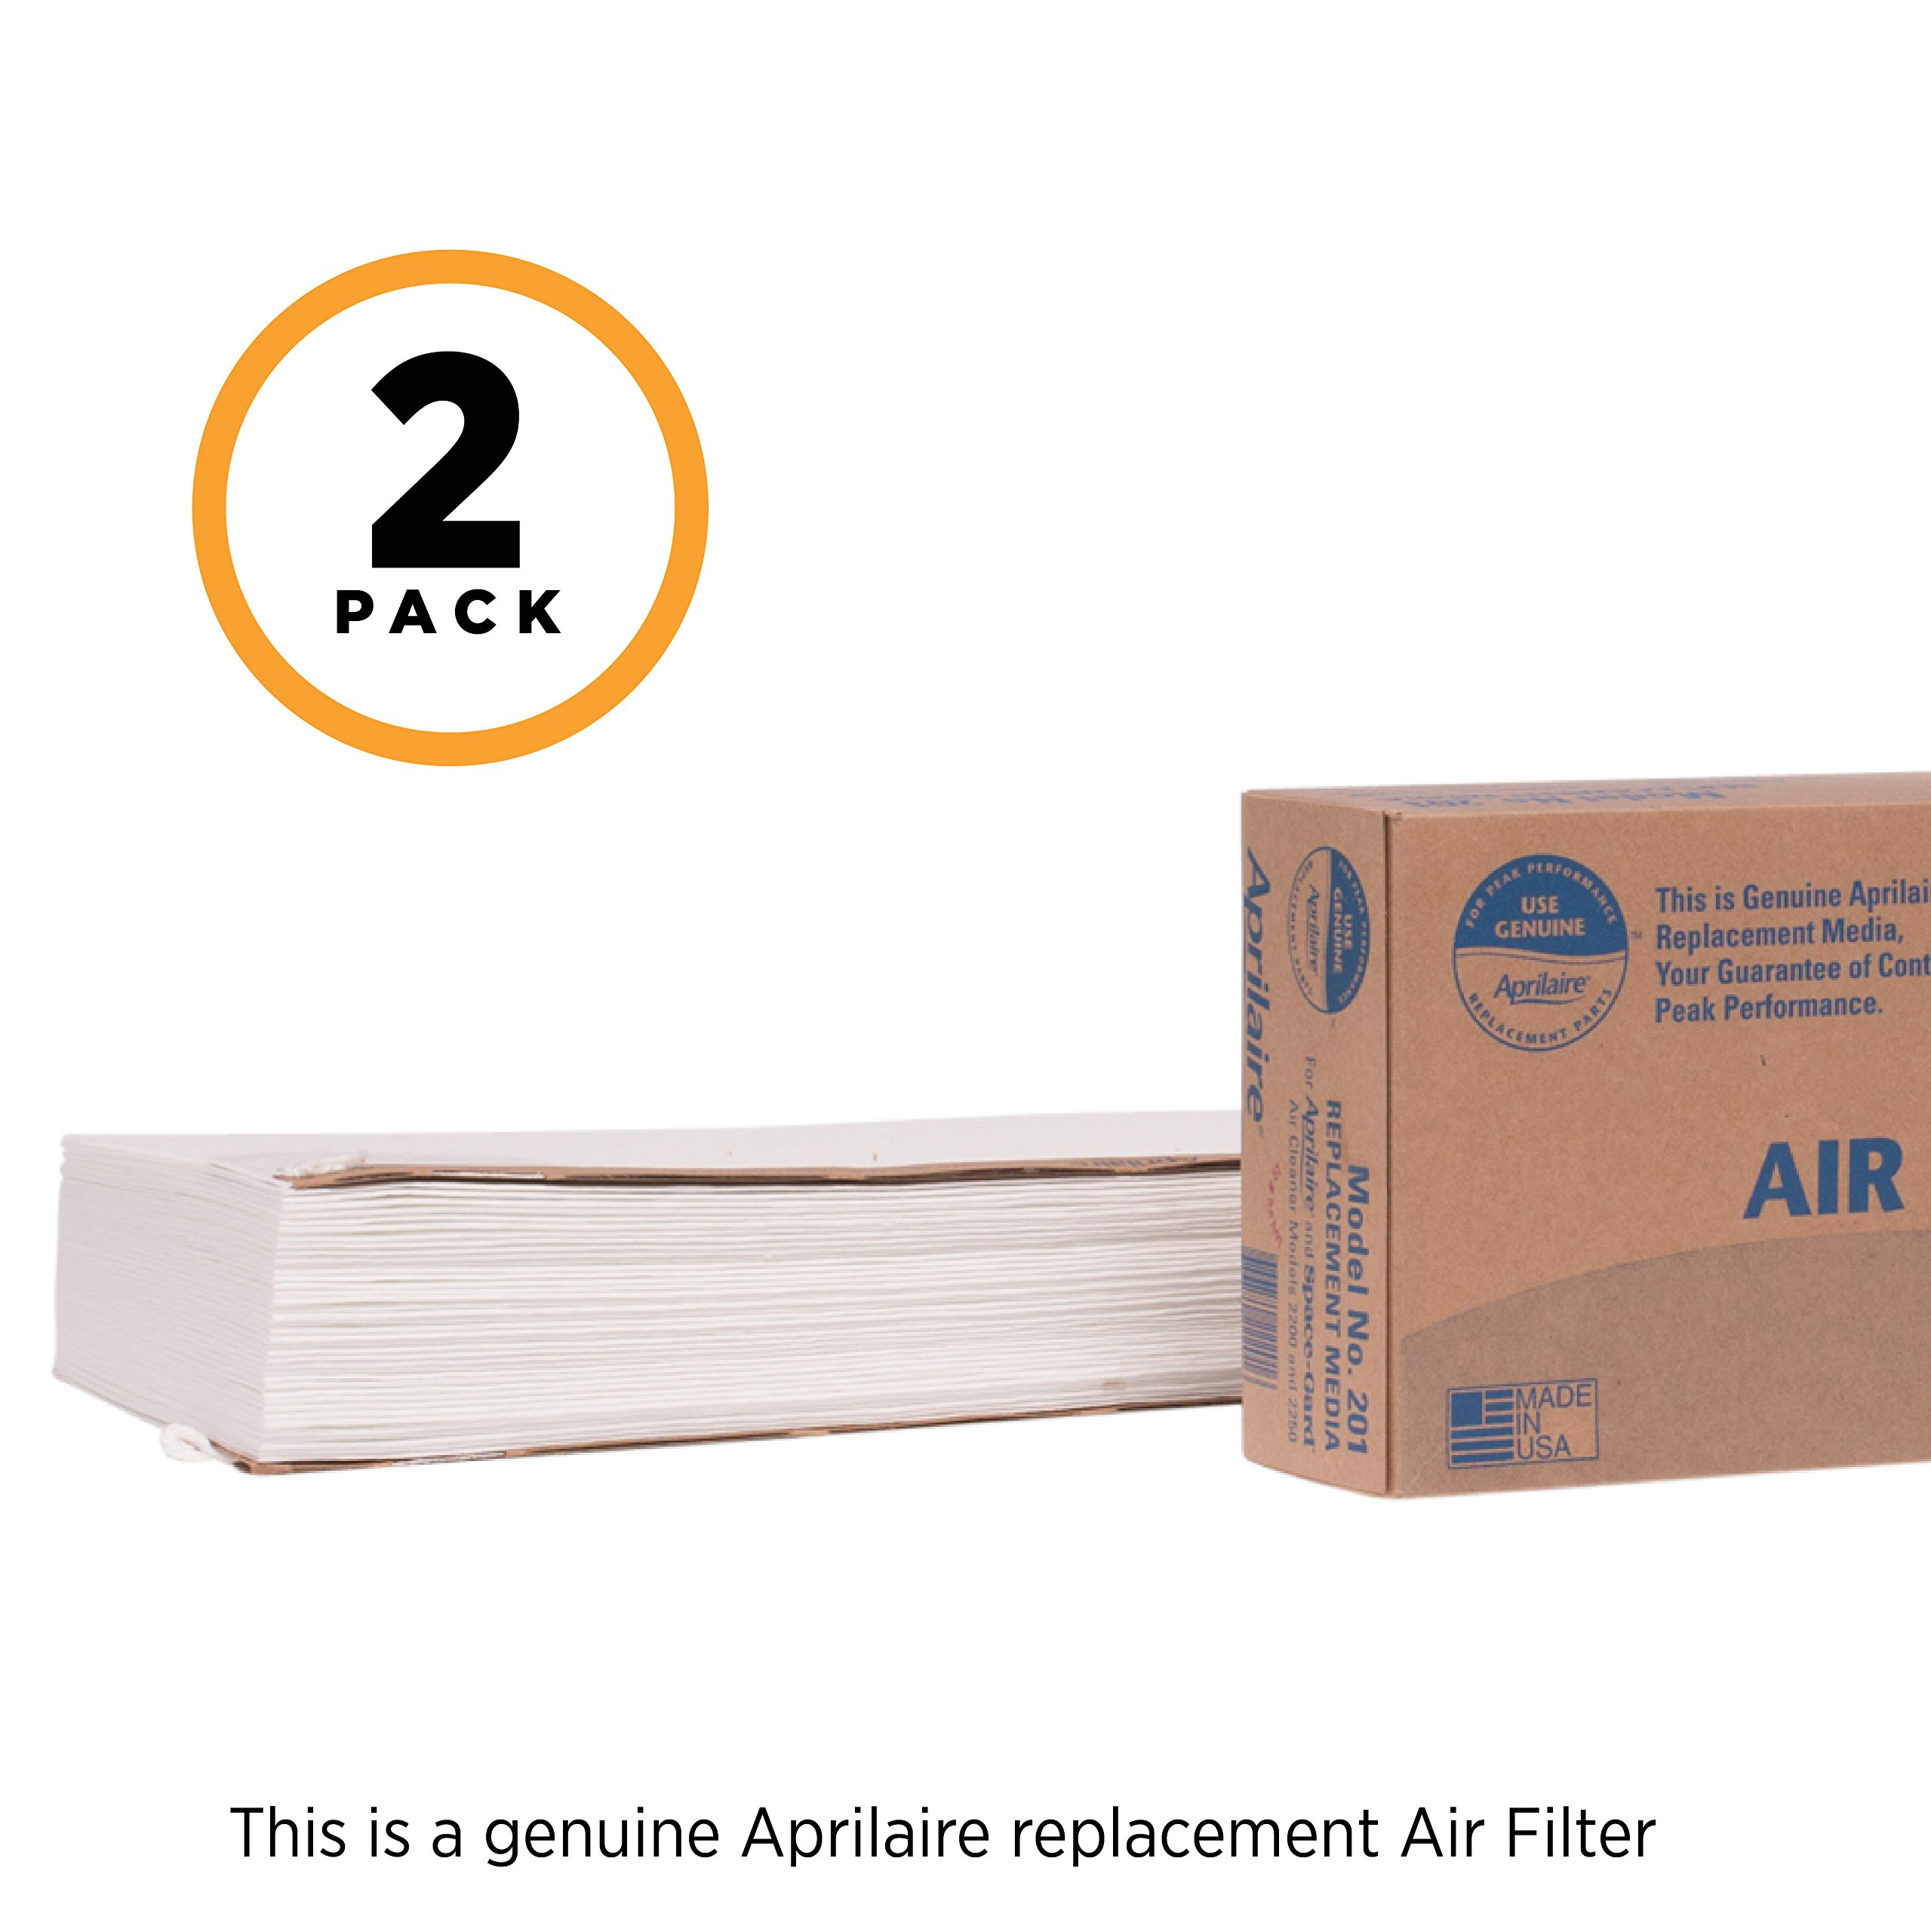 Aprilaire 201 Replacement Filter for Aprilaire Whole House Air Purifier Models: 2200, 2250, Space Gard 2200, MERV 10 (Pack of 2) by Aprilaire